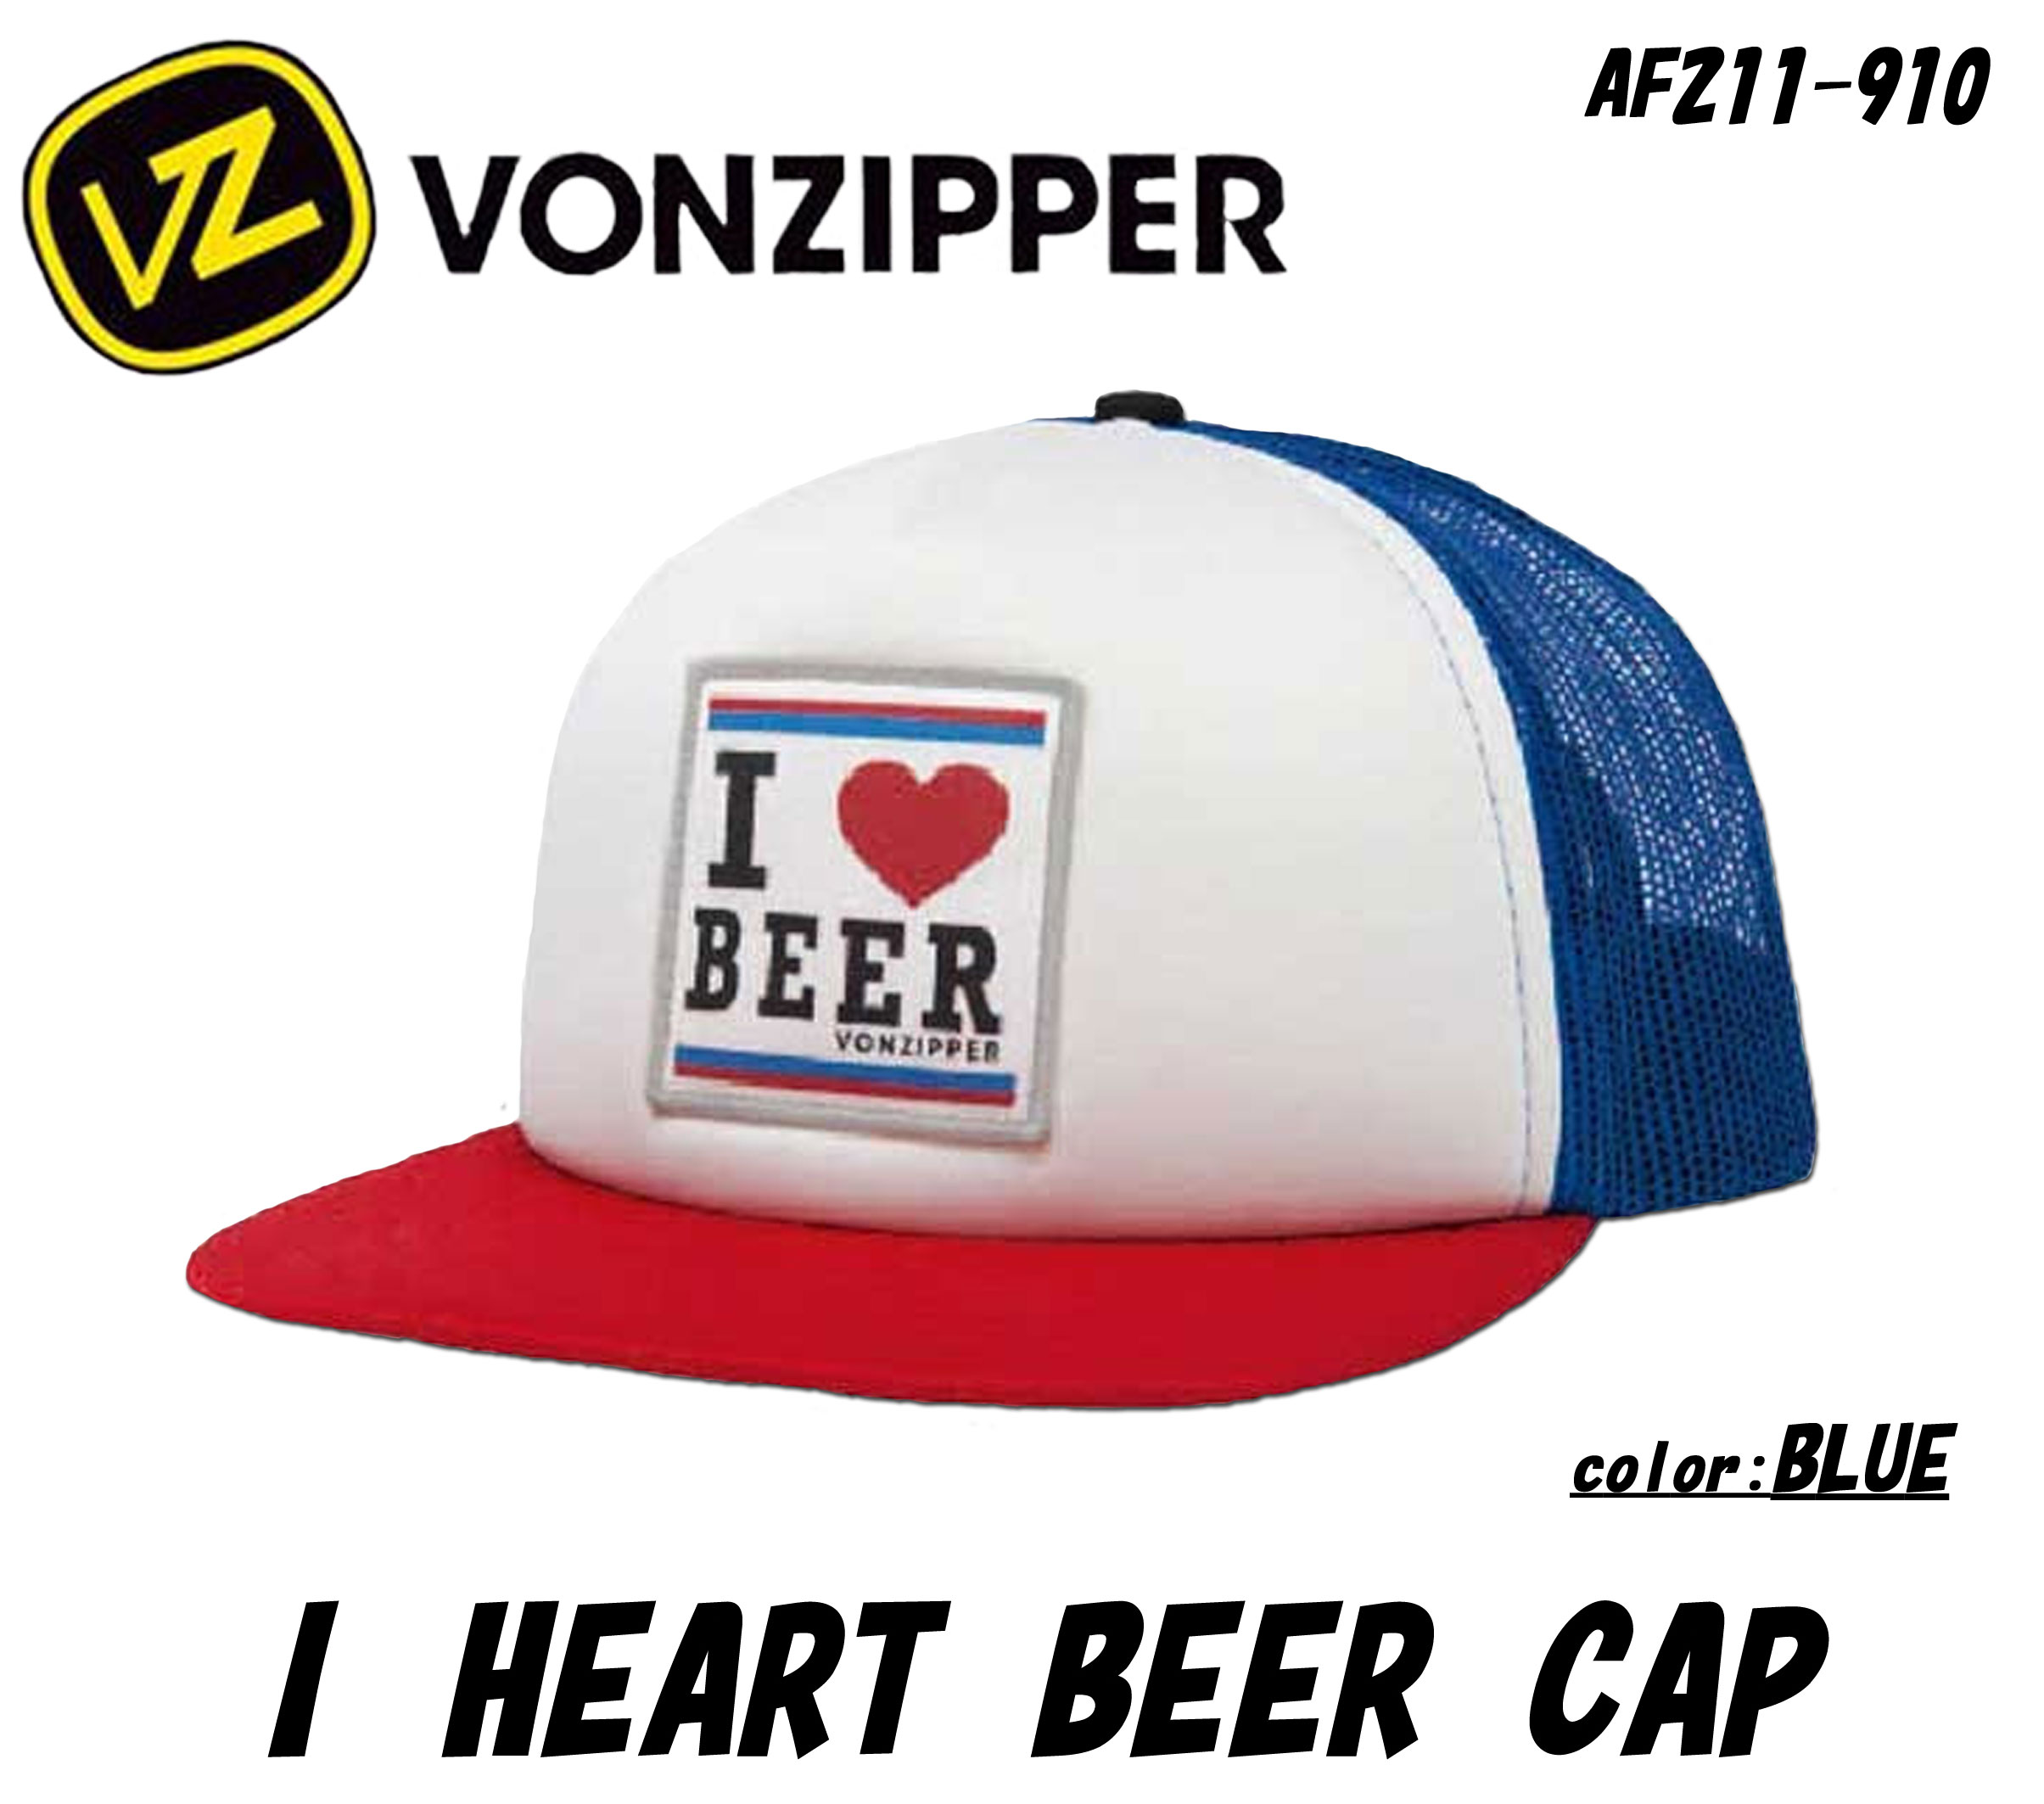 vonzipper_i_heart_beer_cap_mein1